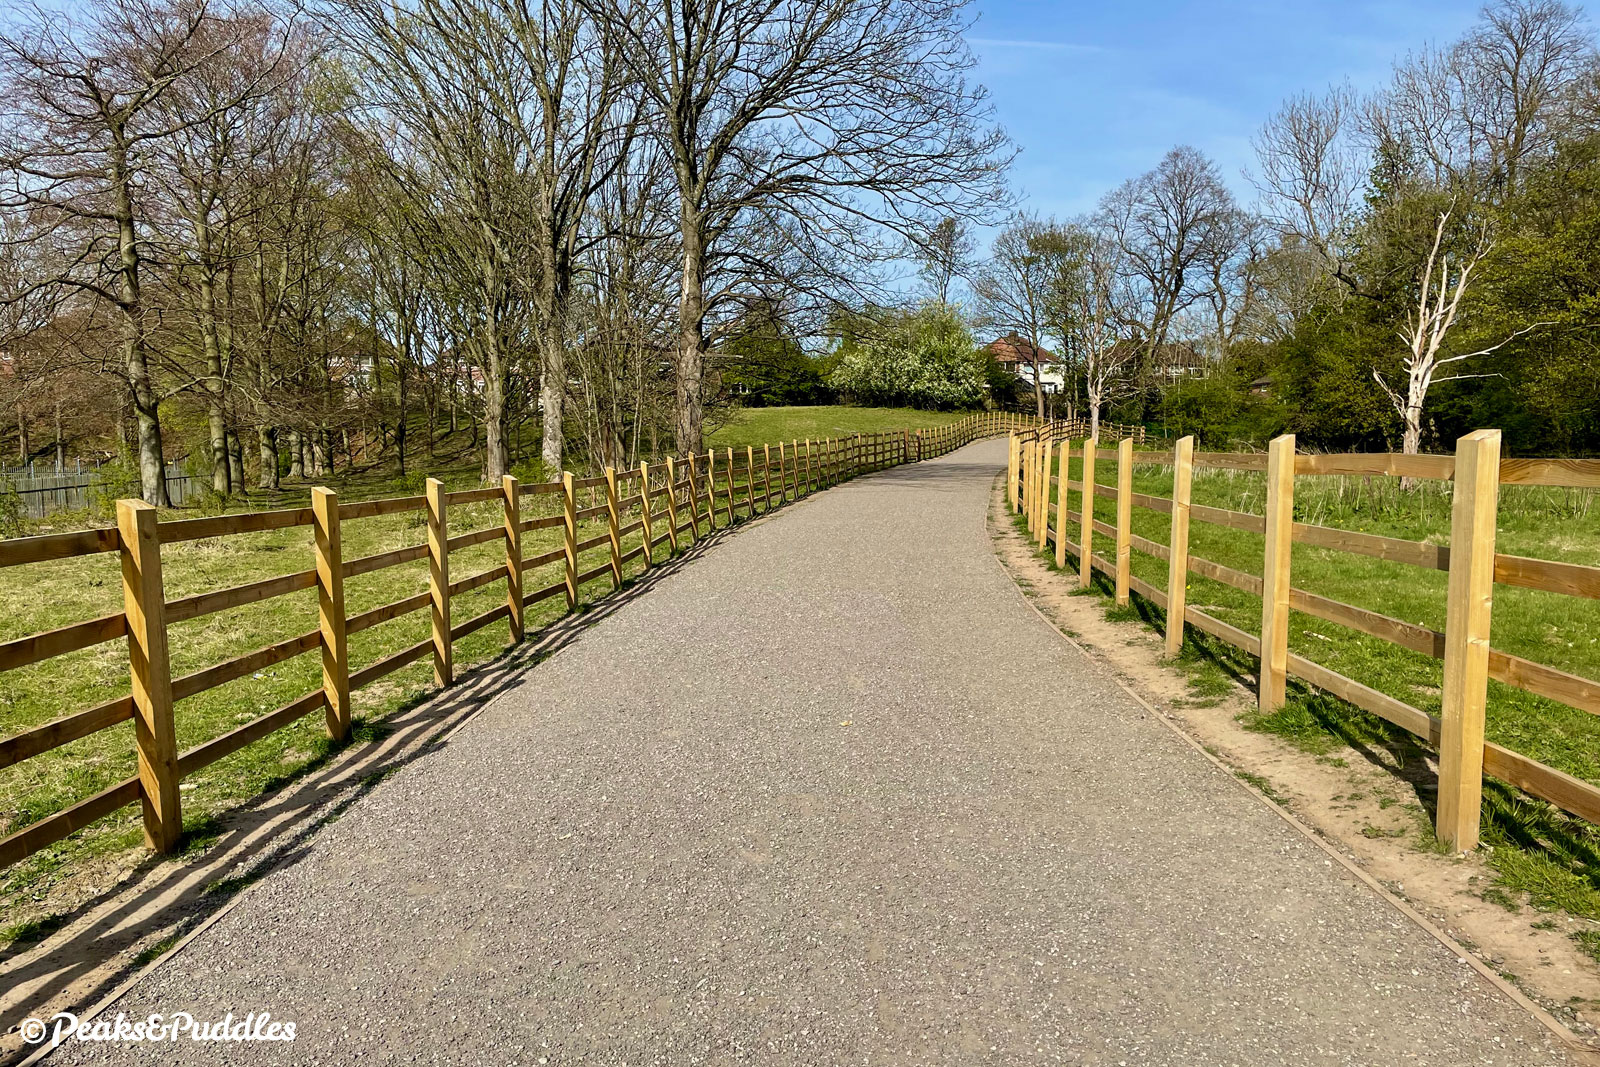 Beyond the bridge, the exceptionally wide gravel track now veers north to connect with the longstanding bridleways of Lower Bredbury.